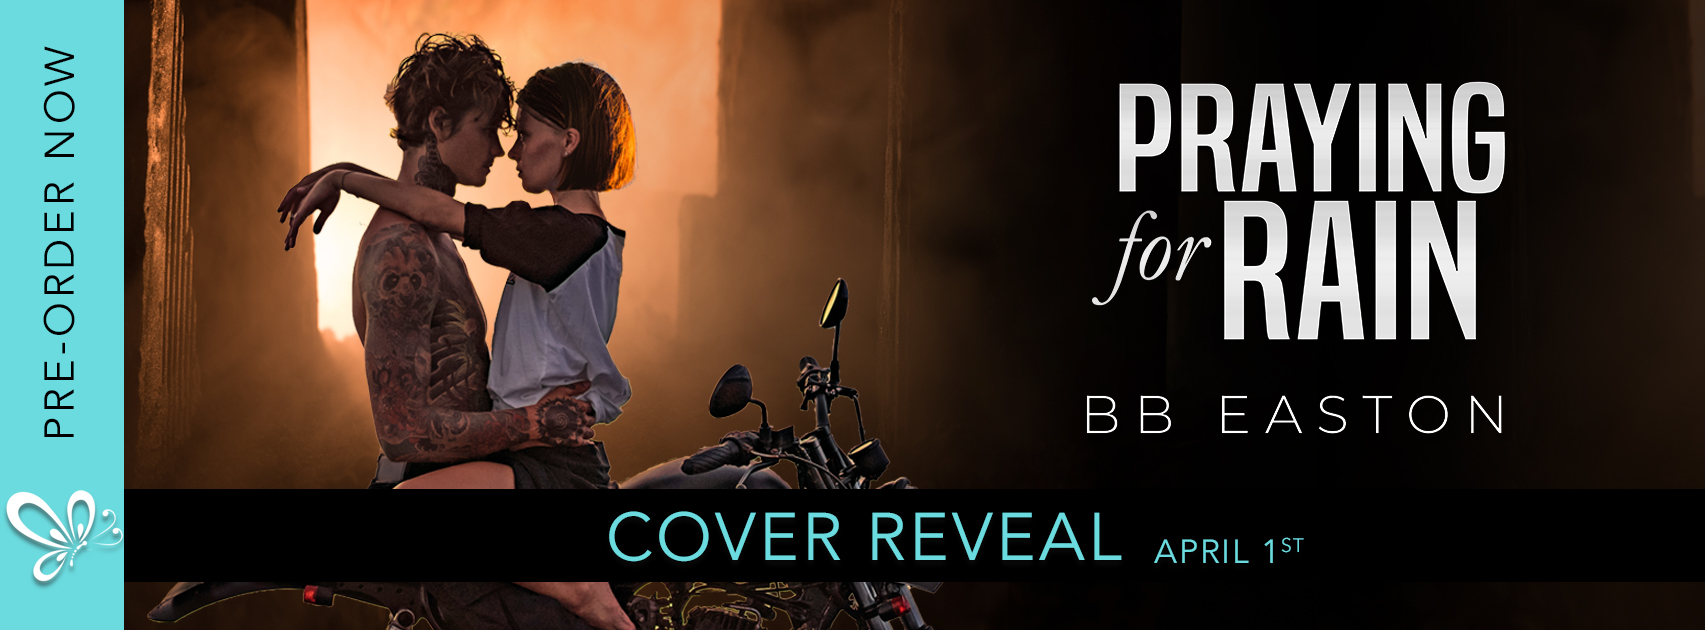 Cover Reveal: Praying for Rain by B. B. Easton